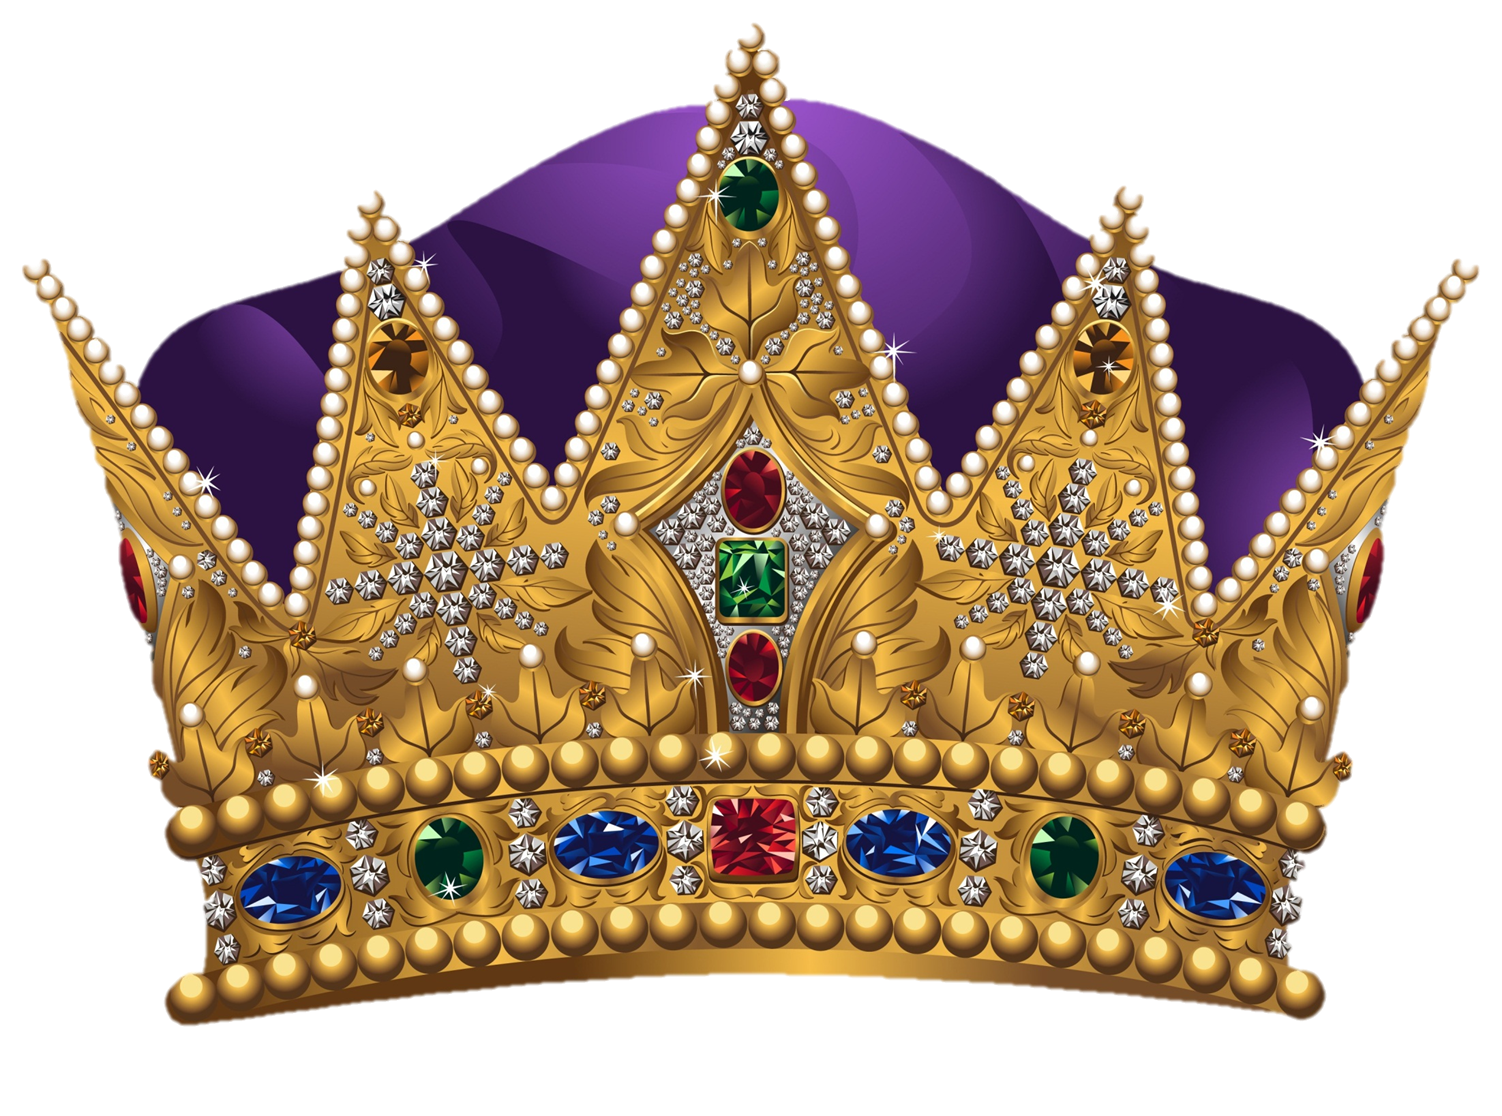 Crown png transparent. Pictures free icons and